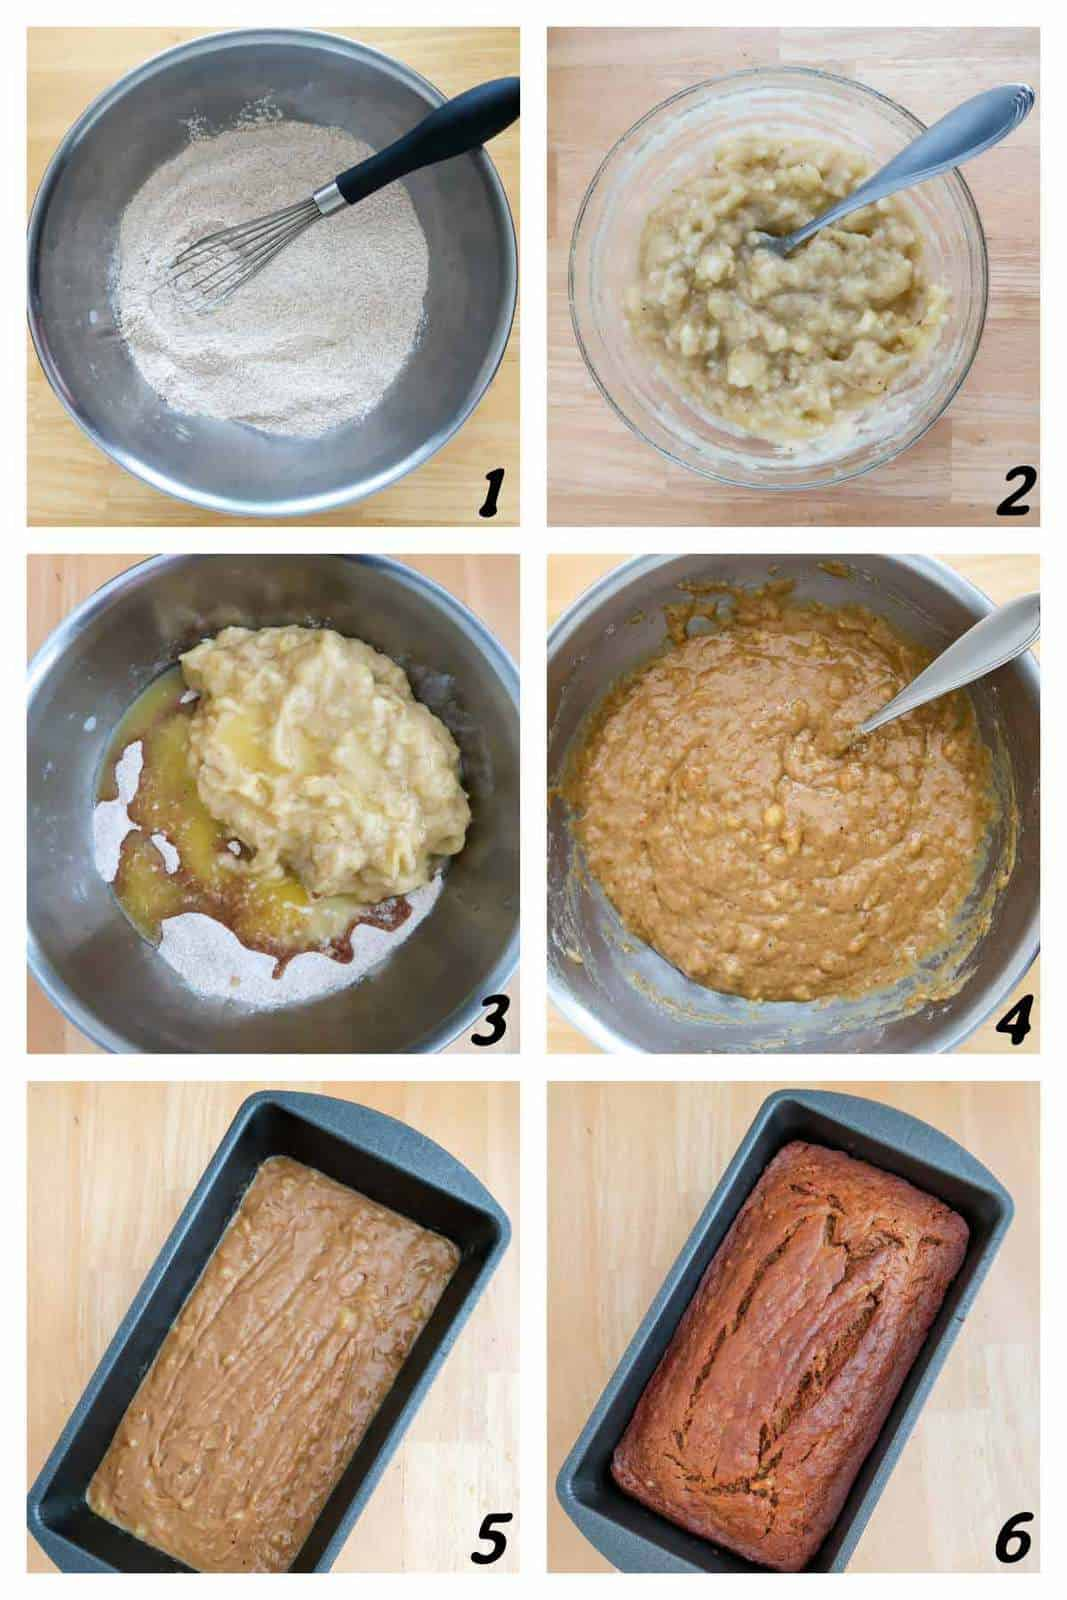 Six panel grid of process shots- mixing together ingredients, pouring into pan and baking.